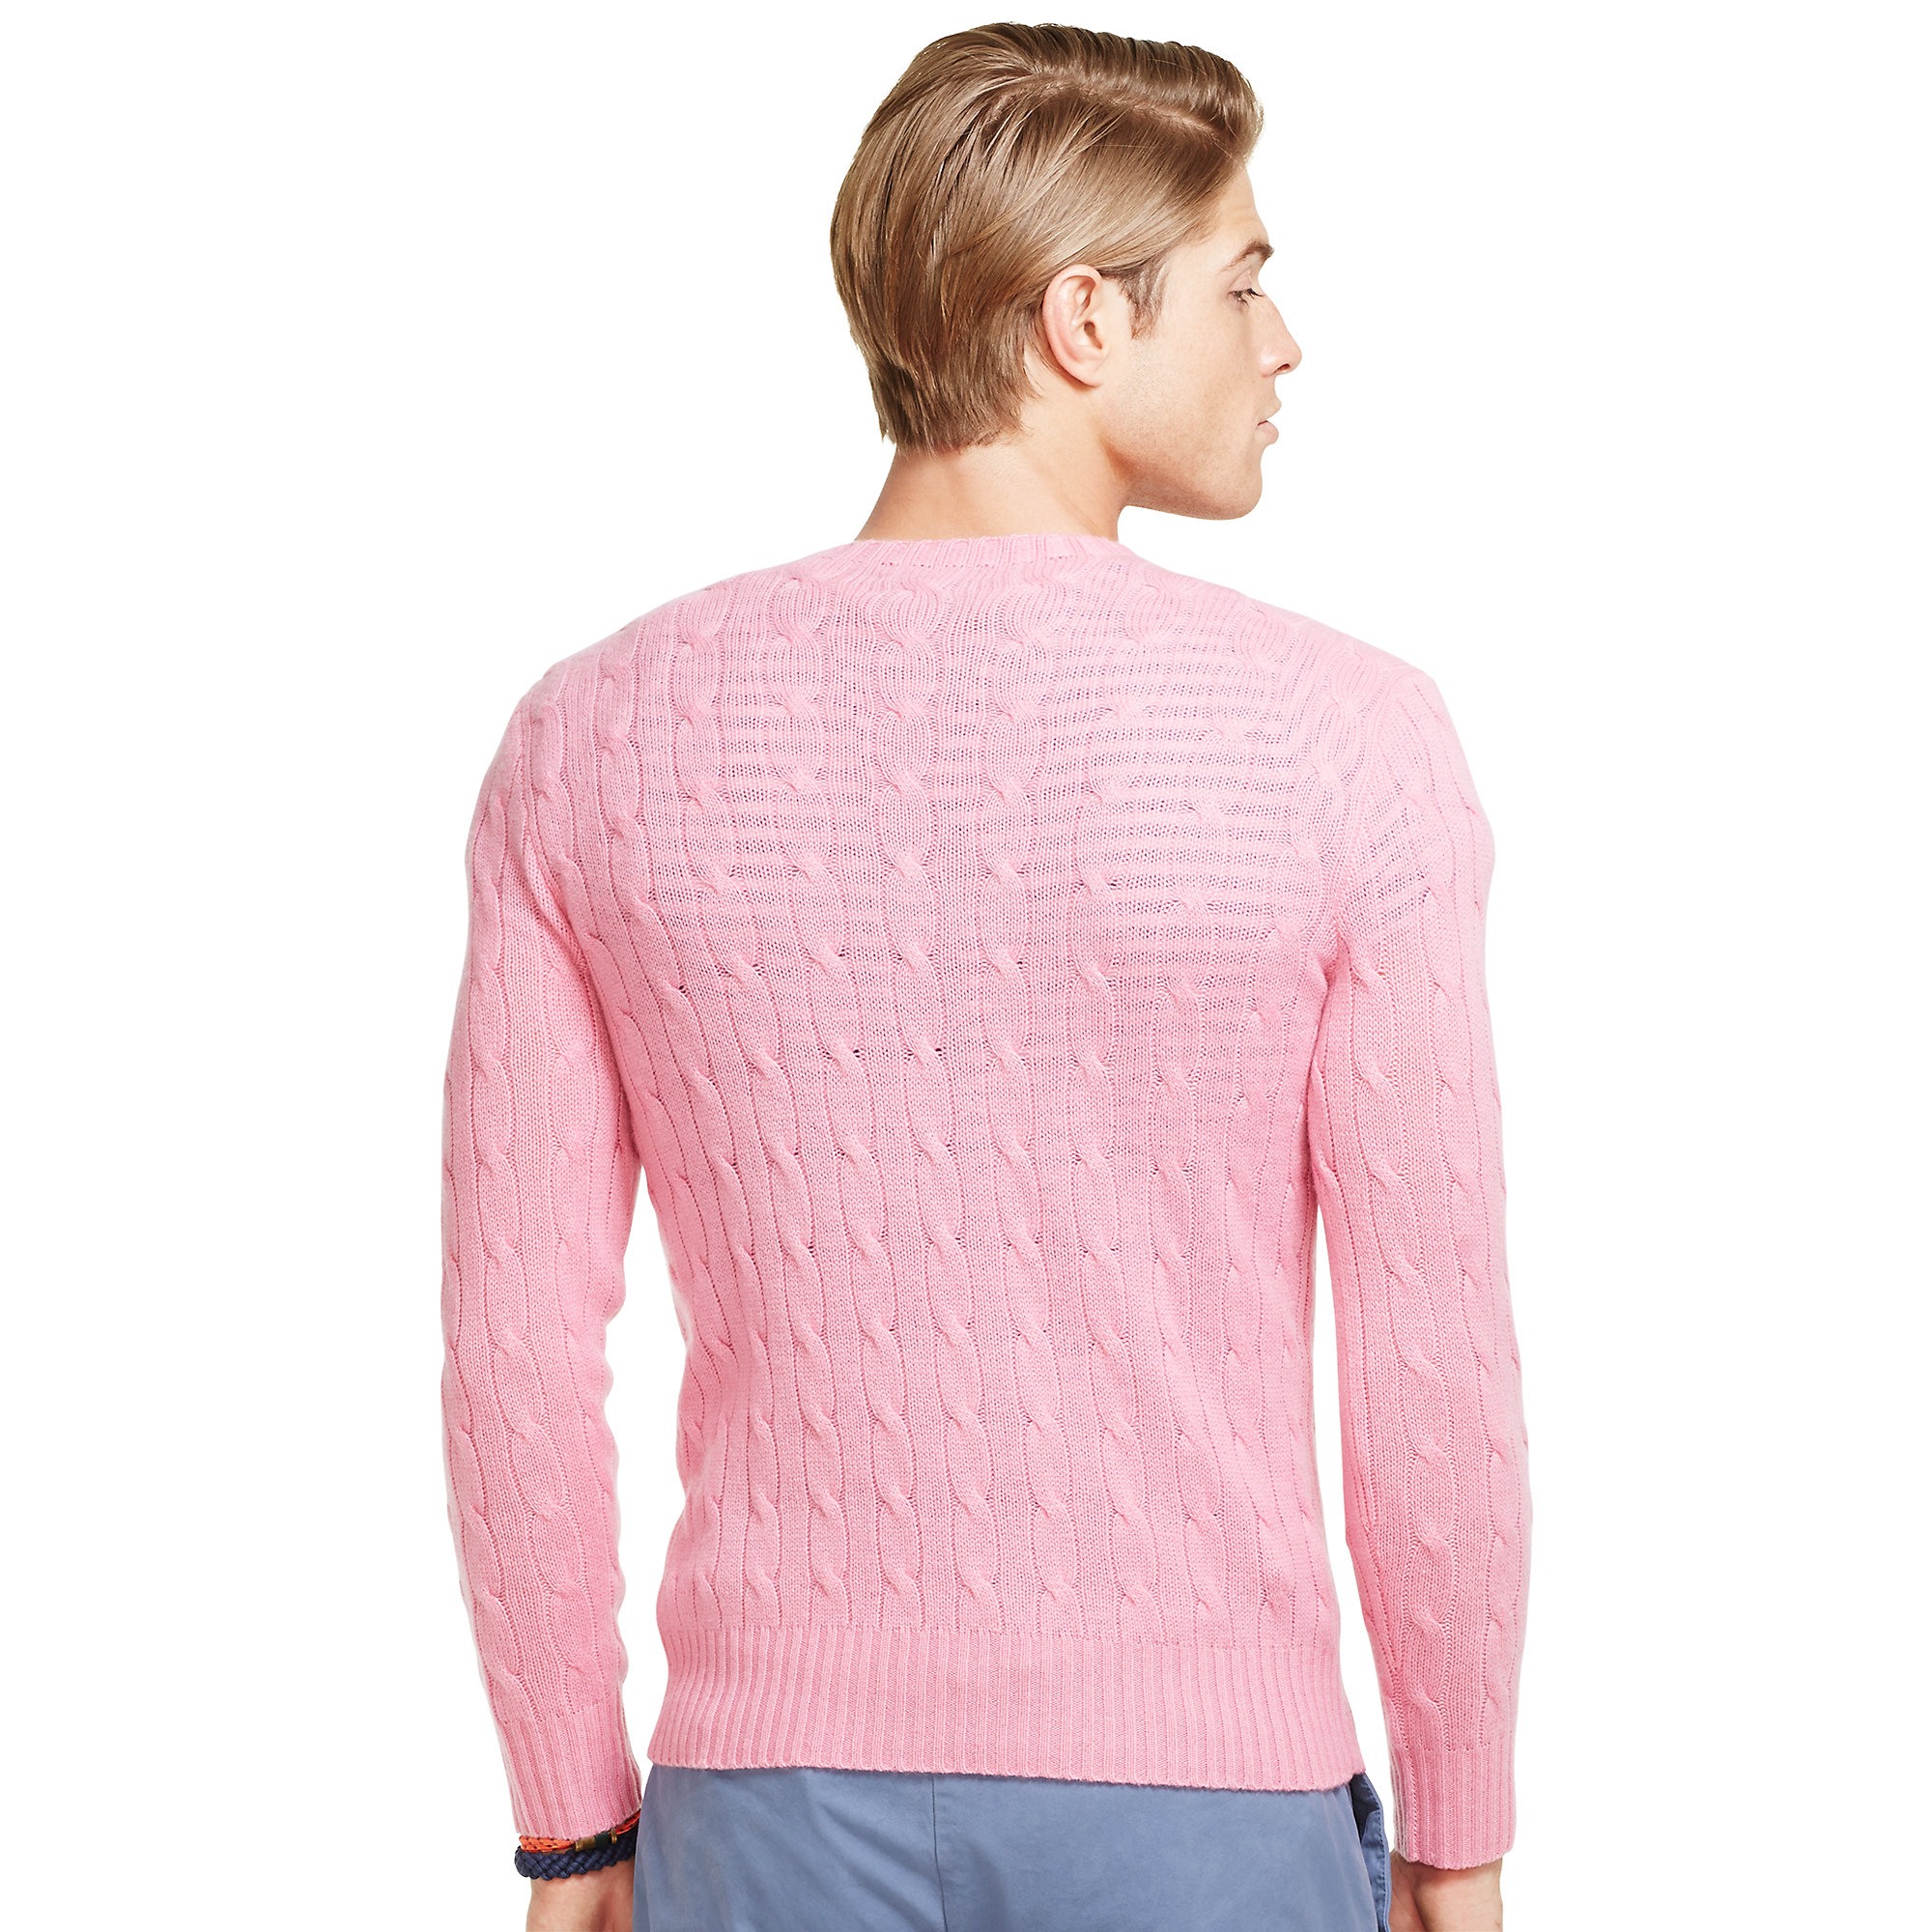 Shop our Collection of Women's Pink Sweaters at distrib-wjmx2fn9.ga for the Latest Designer Brands & Styles. FREE SHIPPING AVAILABLE!